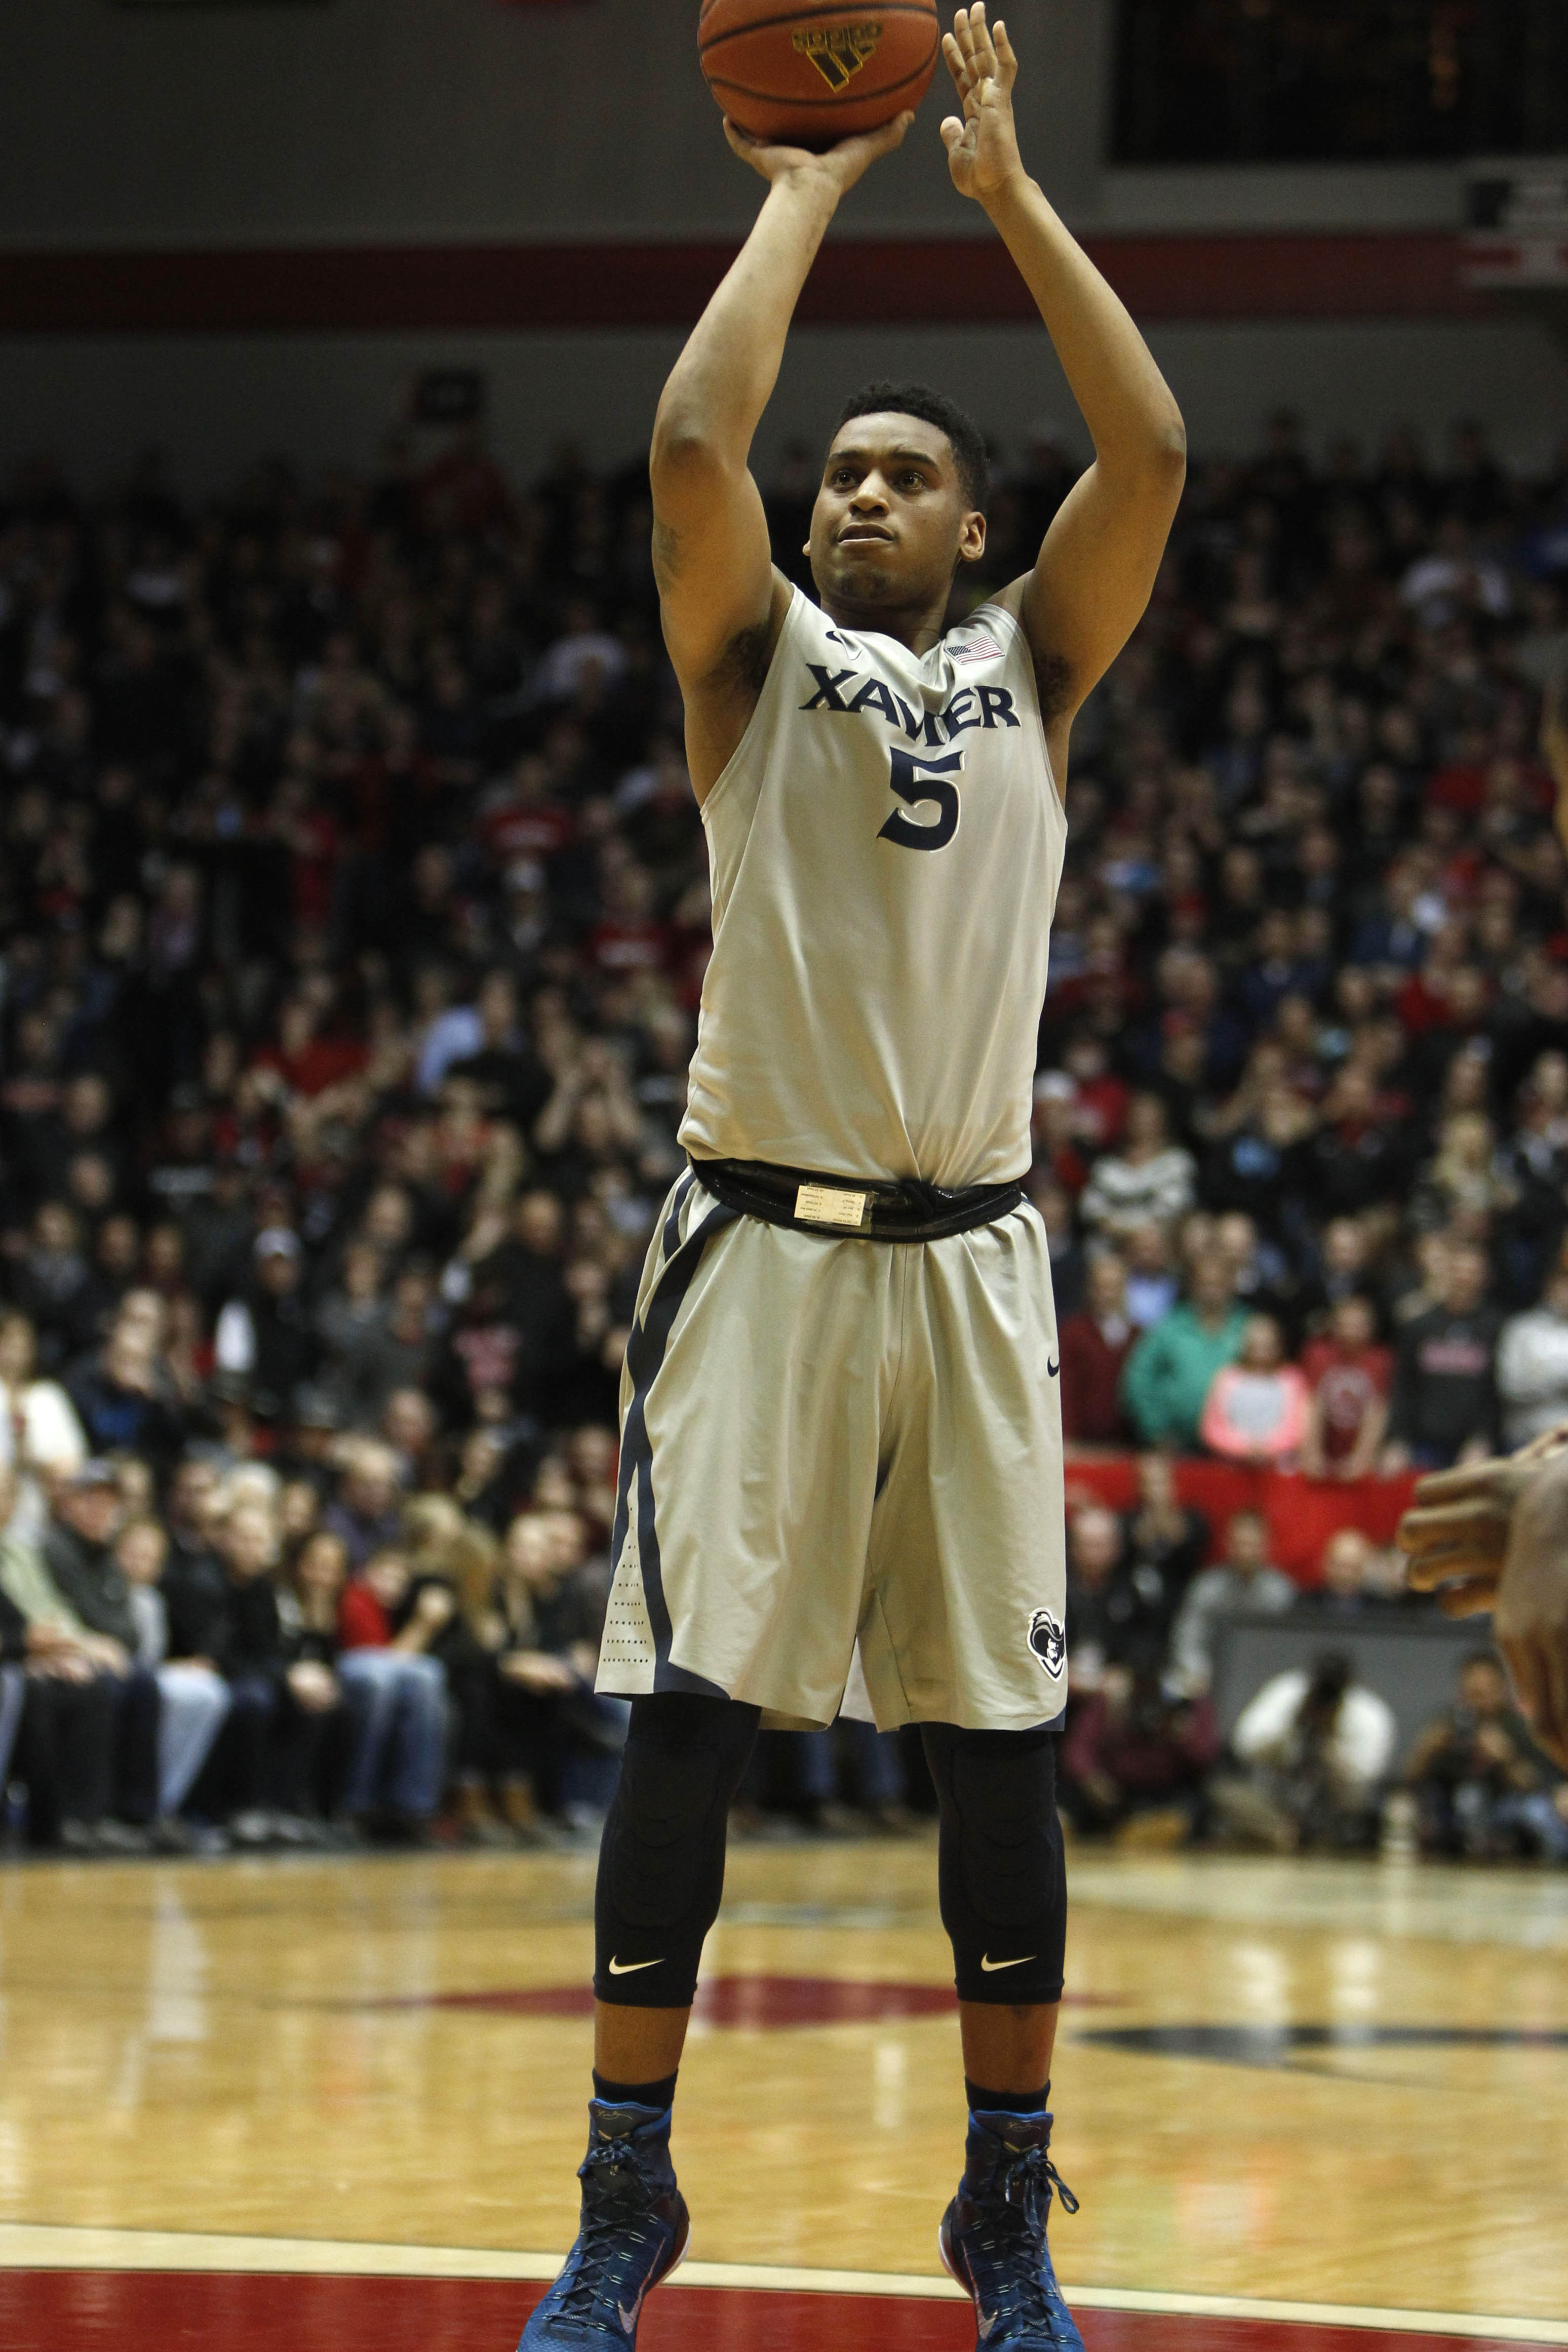 Trevon sunk the game winning free throws against UC. That alone merits a high grade.